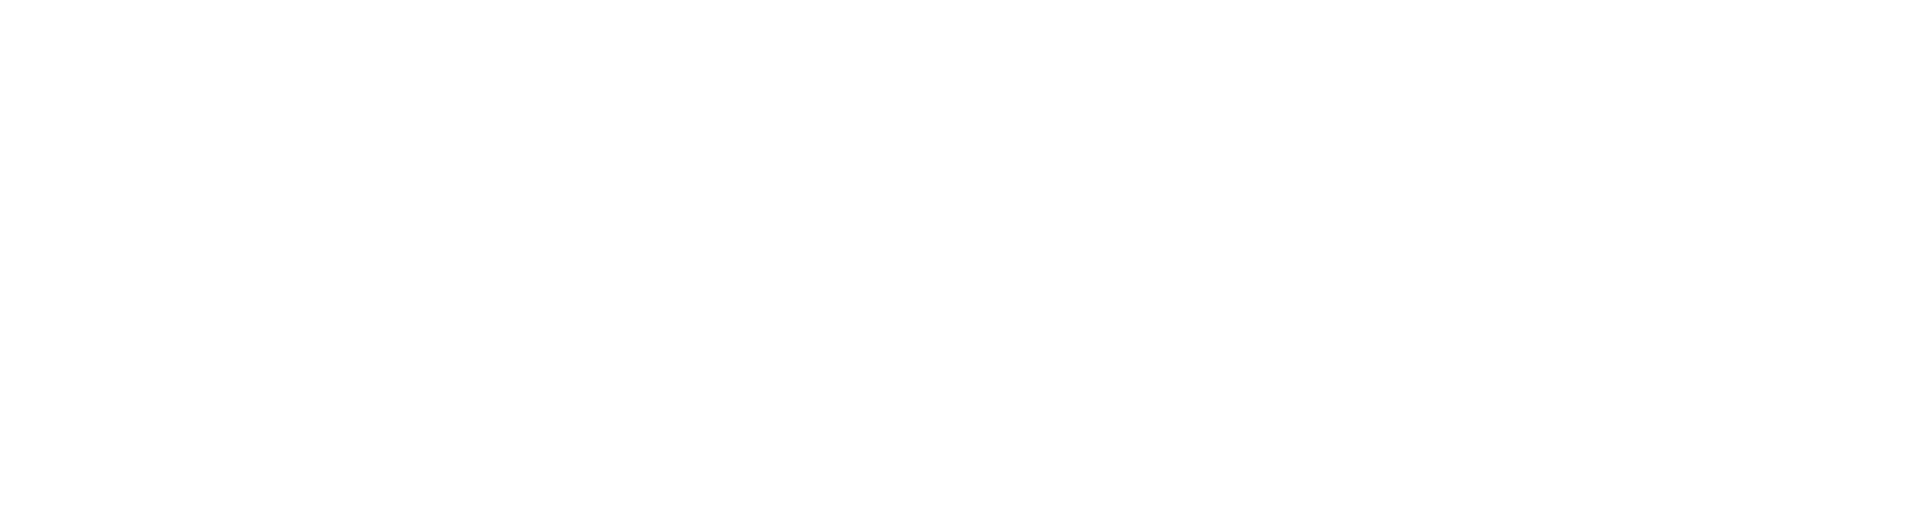 SASHA: South Australian Sexual Health Awareness